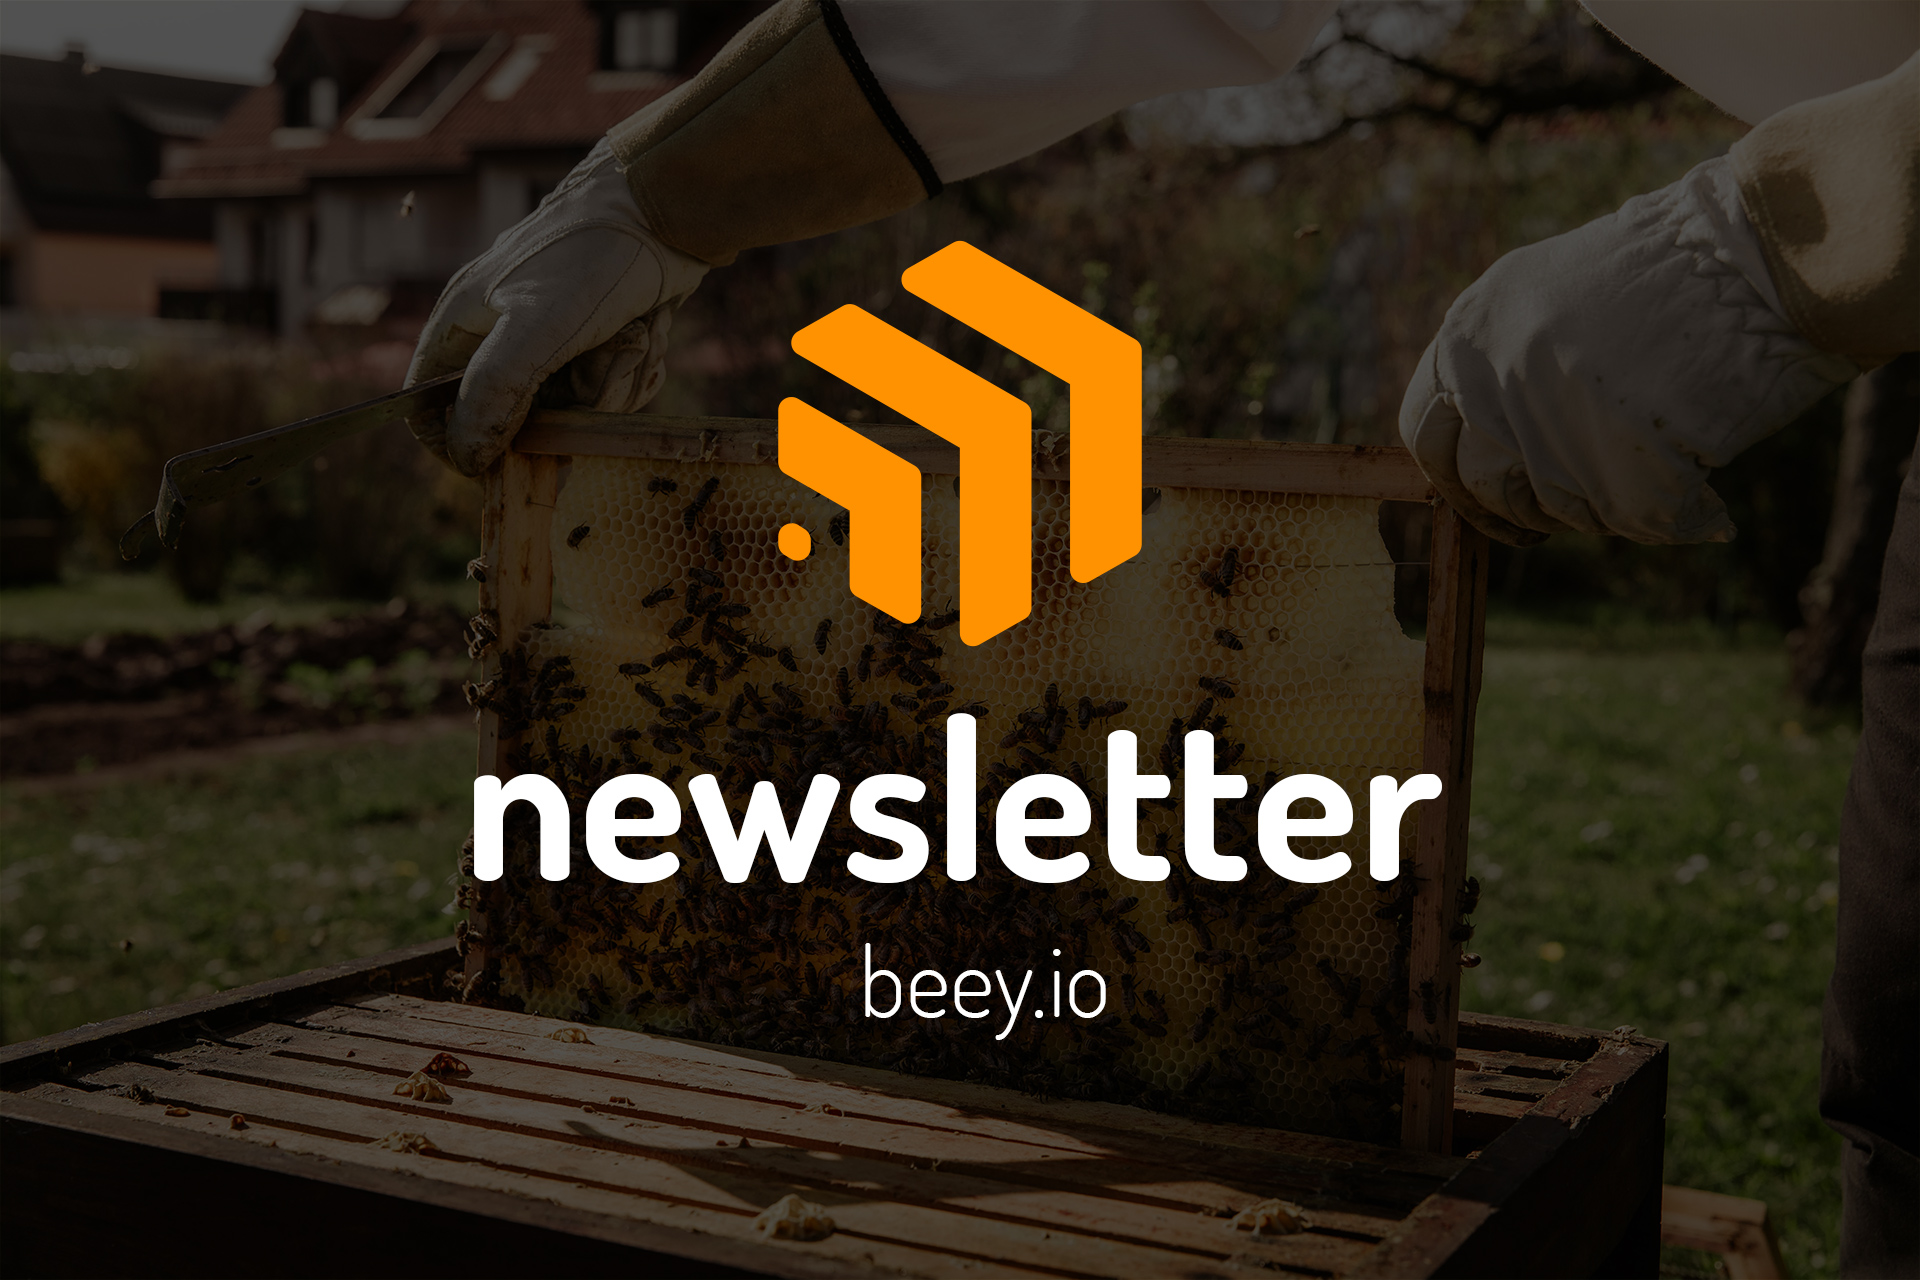 Beey newsletter: Is it true that humanity cannot survive without bees?